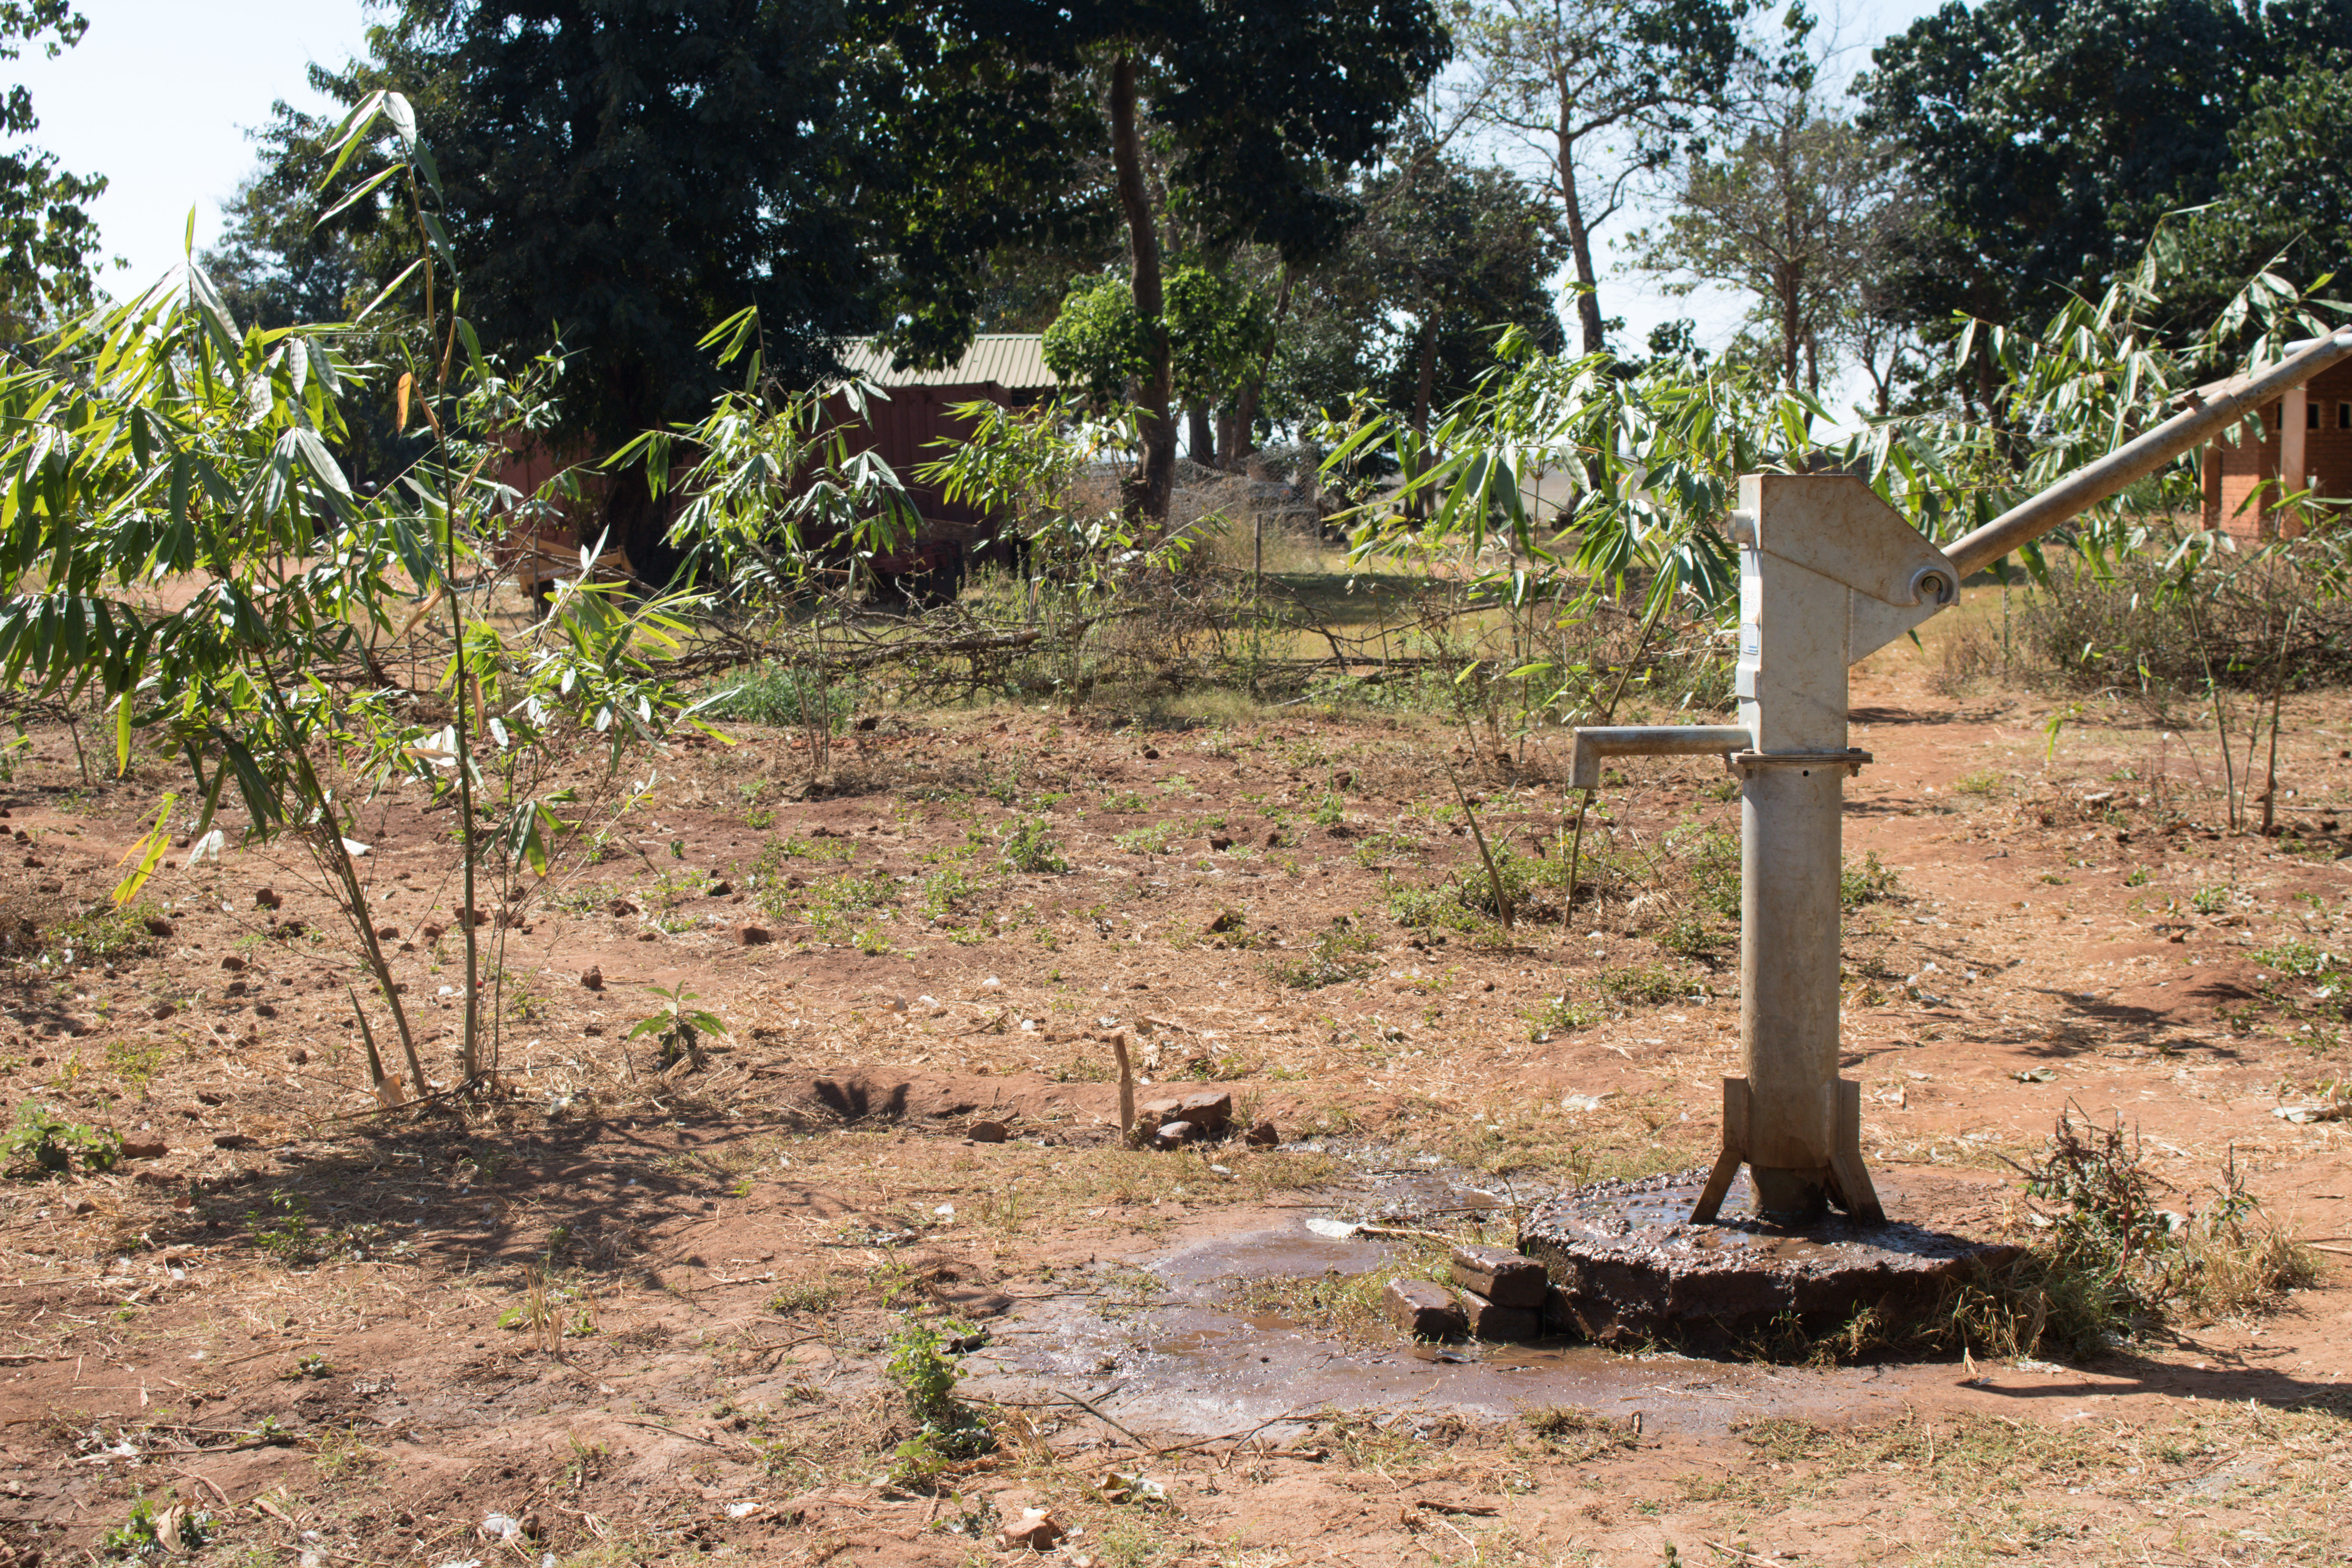 AfriBam planted giant bamboo seedlings around its water pump to absorb standing water.